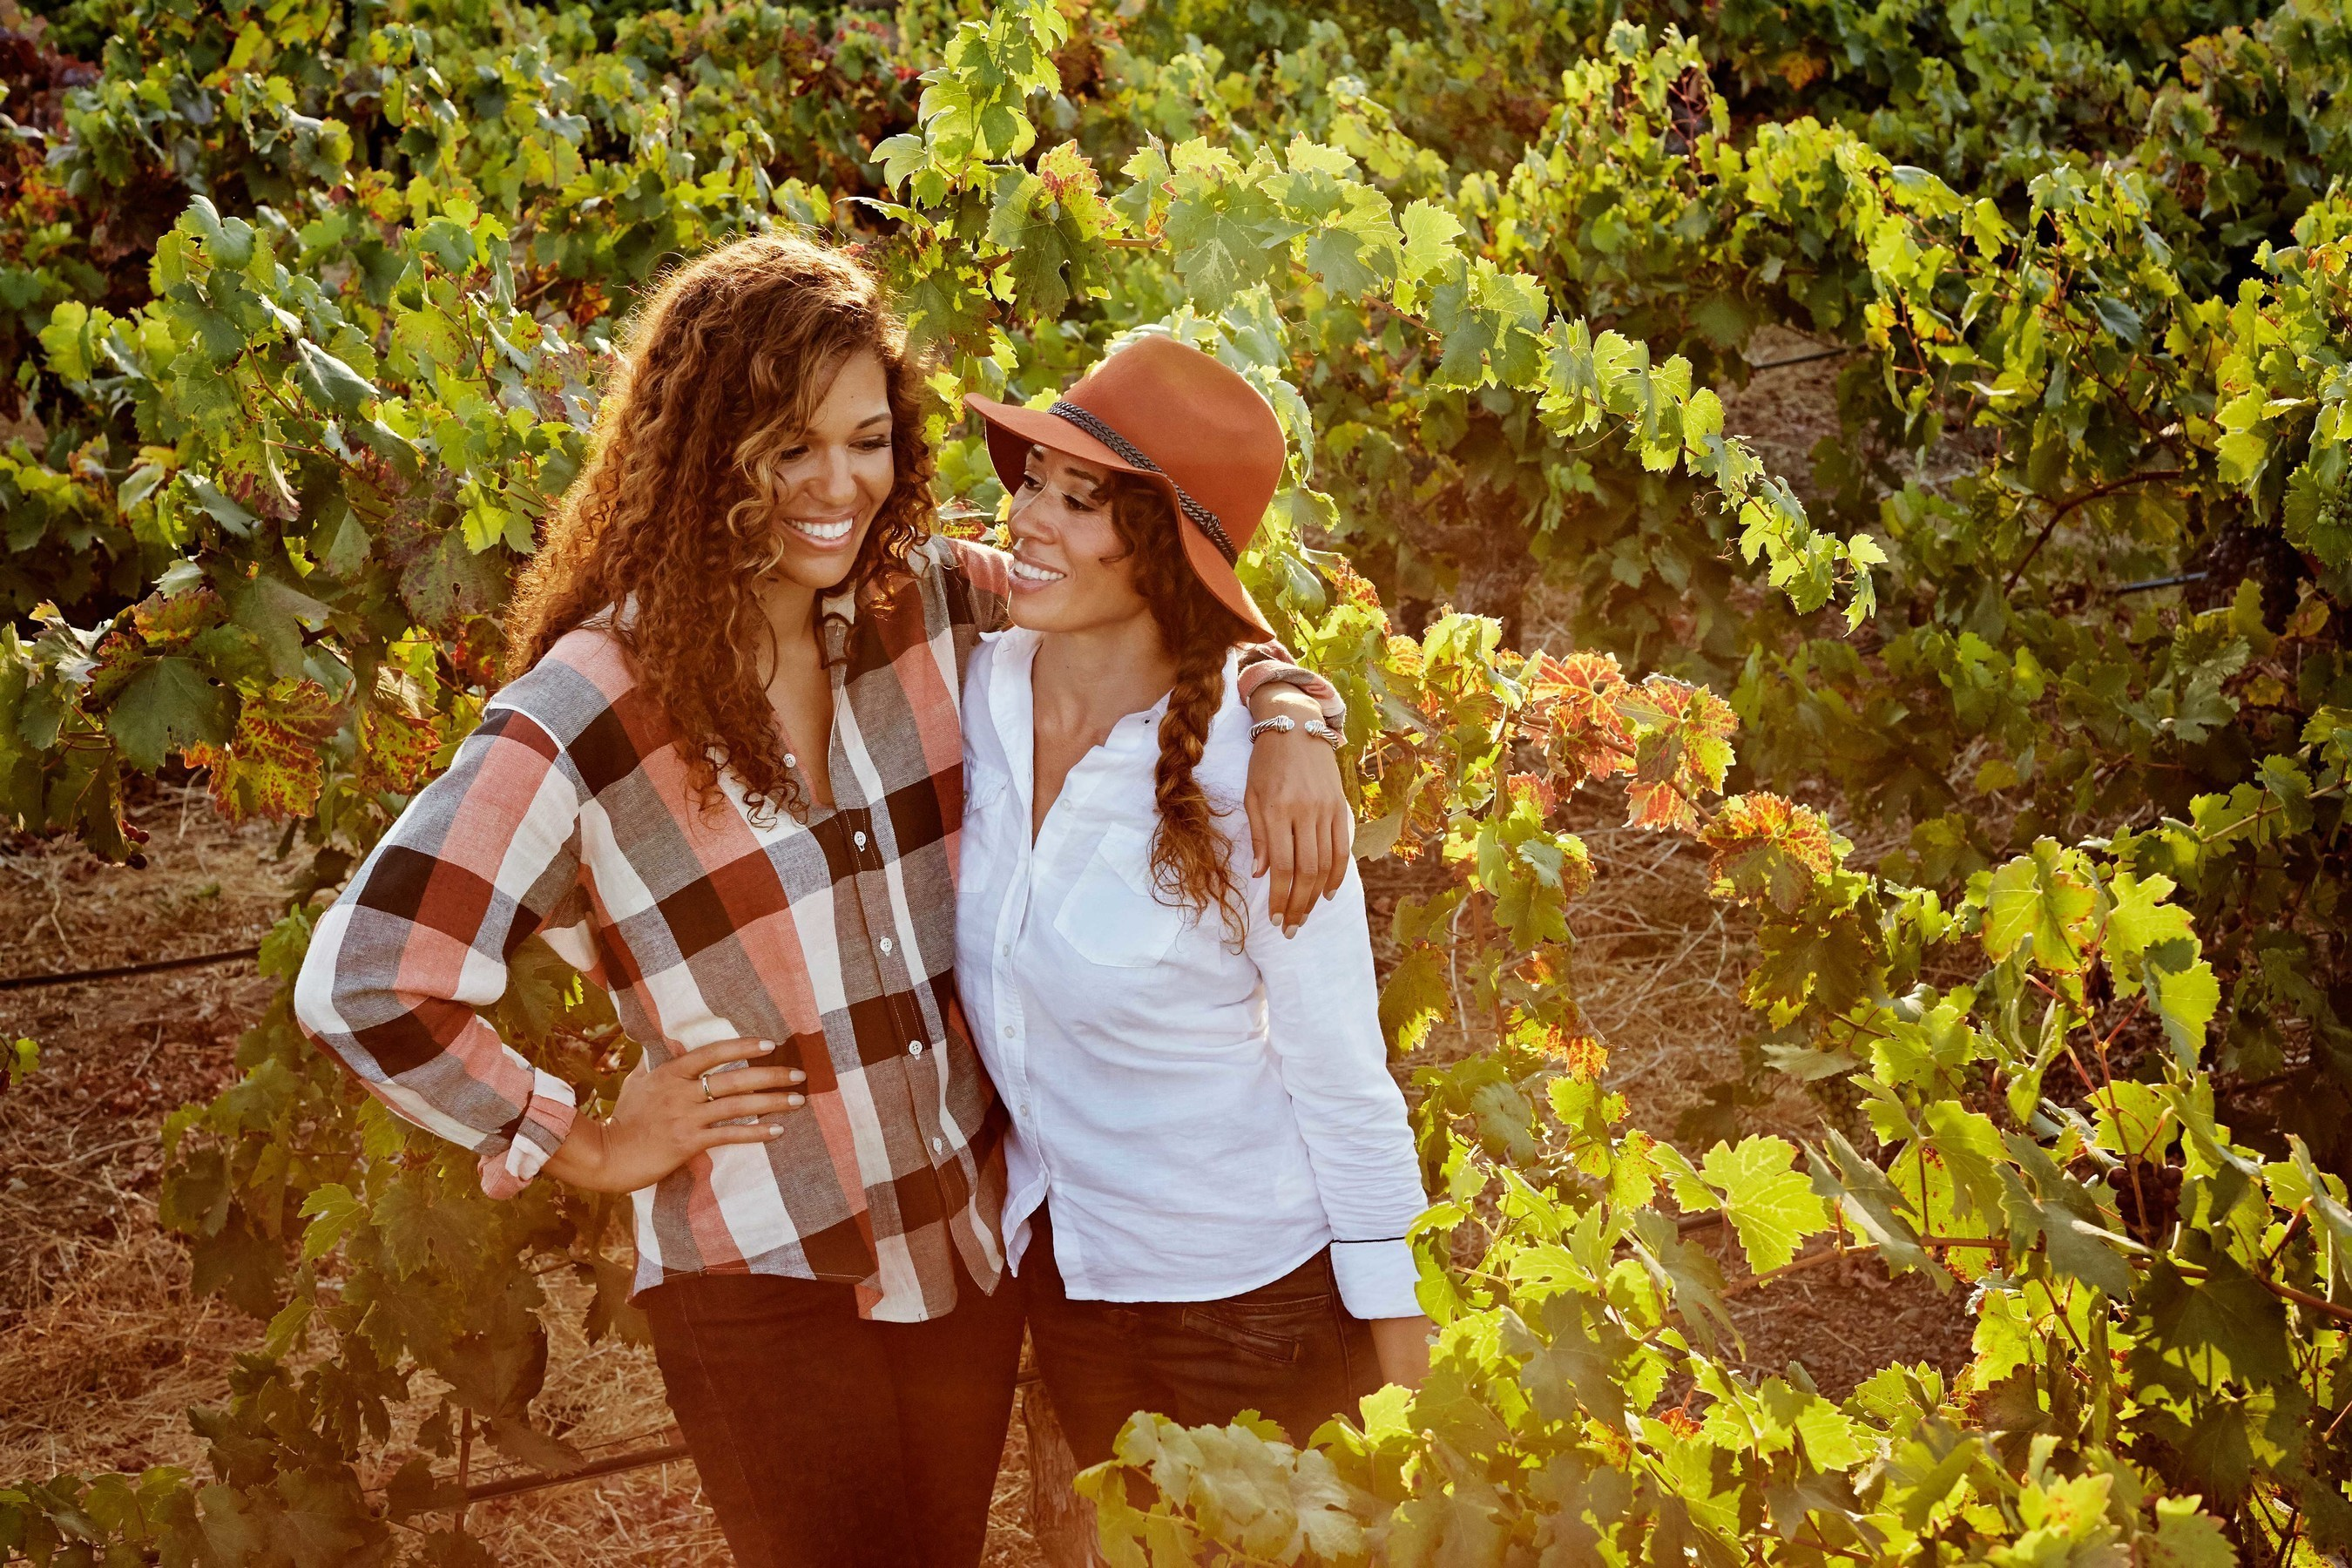 The latest wine release from Diageo Chateau & Estate Wines, Truvee, co-created by sisters' Robin and Andrea McBride.